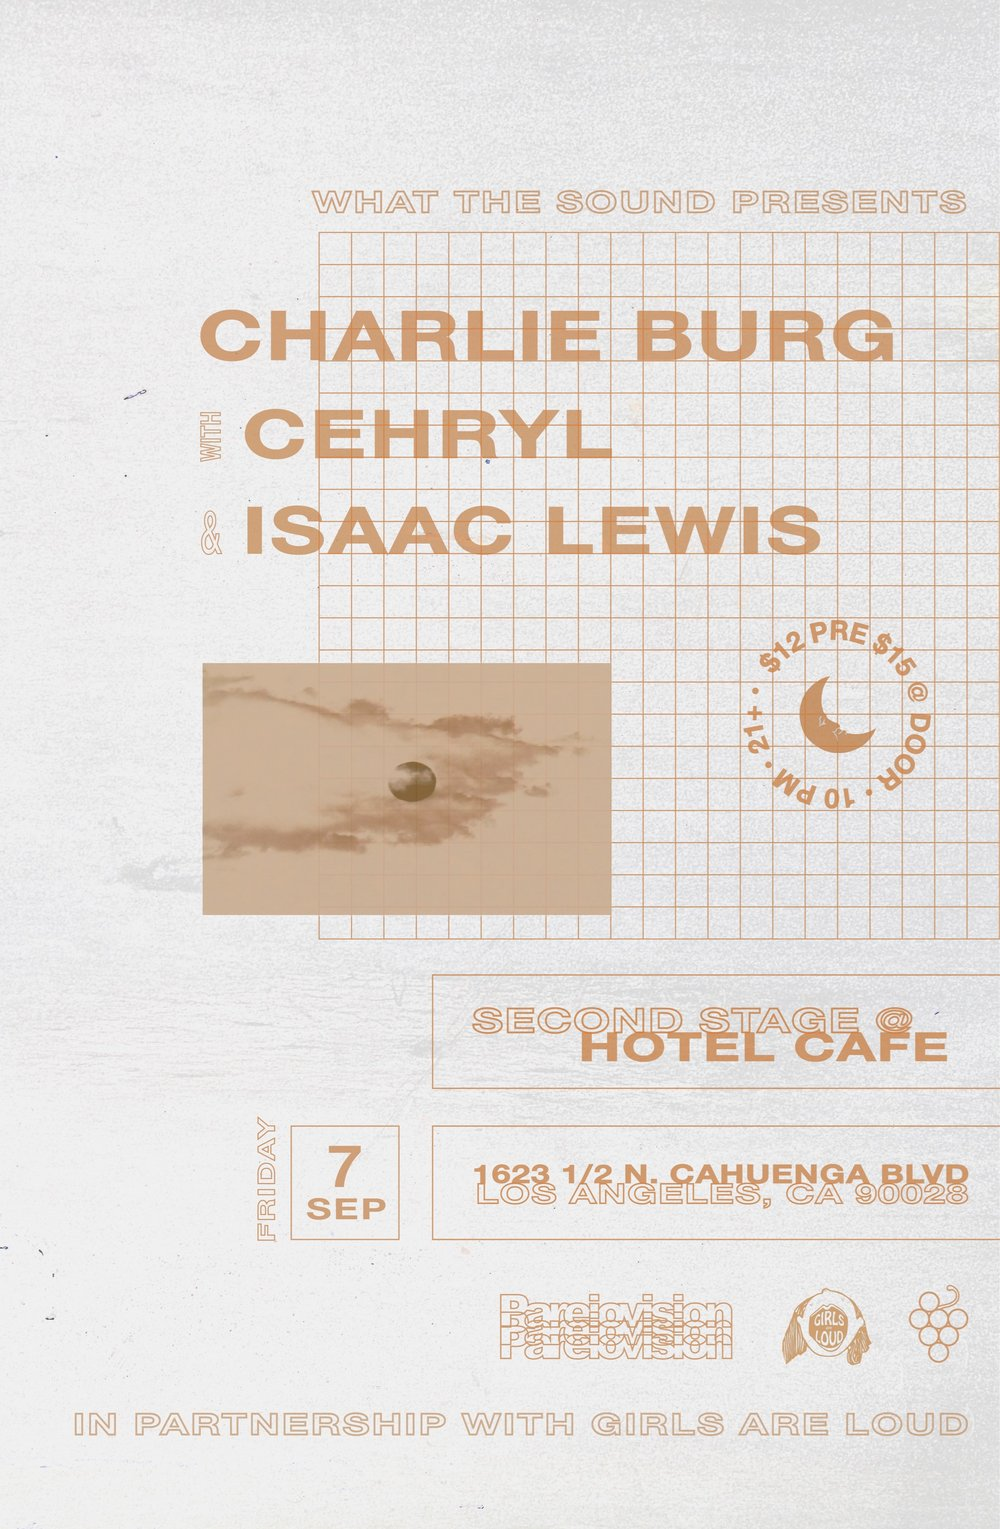 CHARLIE BURG / CEHRYL / ISAAC LEWIS - Art by Sabrina GhantousSeptember 7 @ The Hotel Cafe - Second Stage$12 ADV / $15 DOORS21+